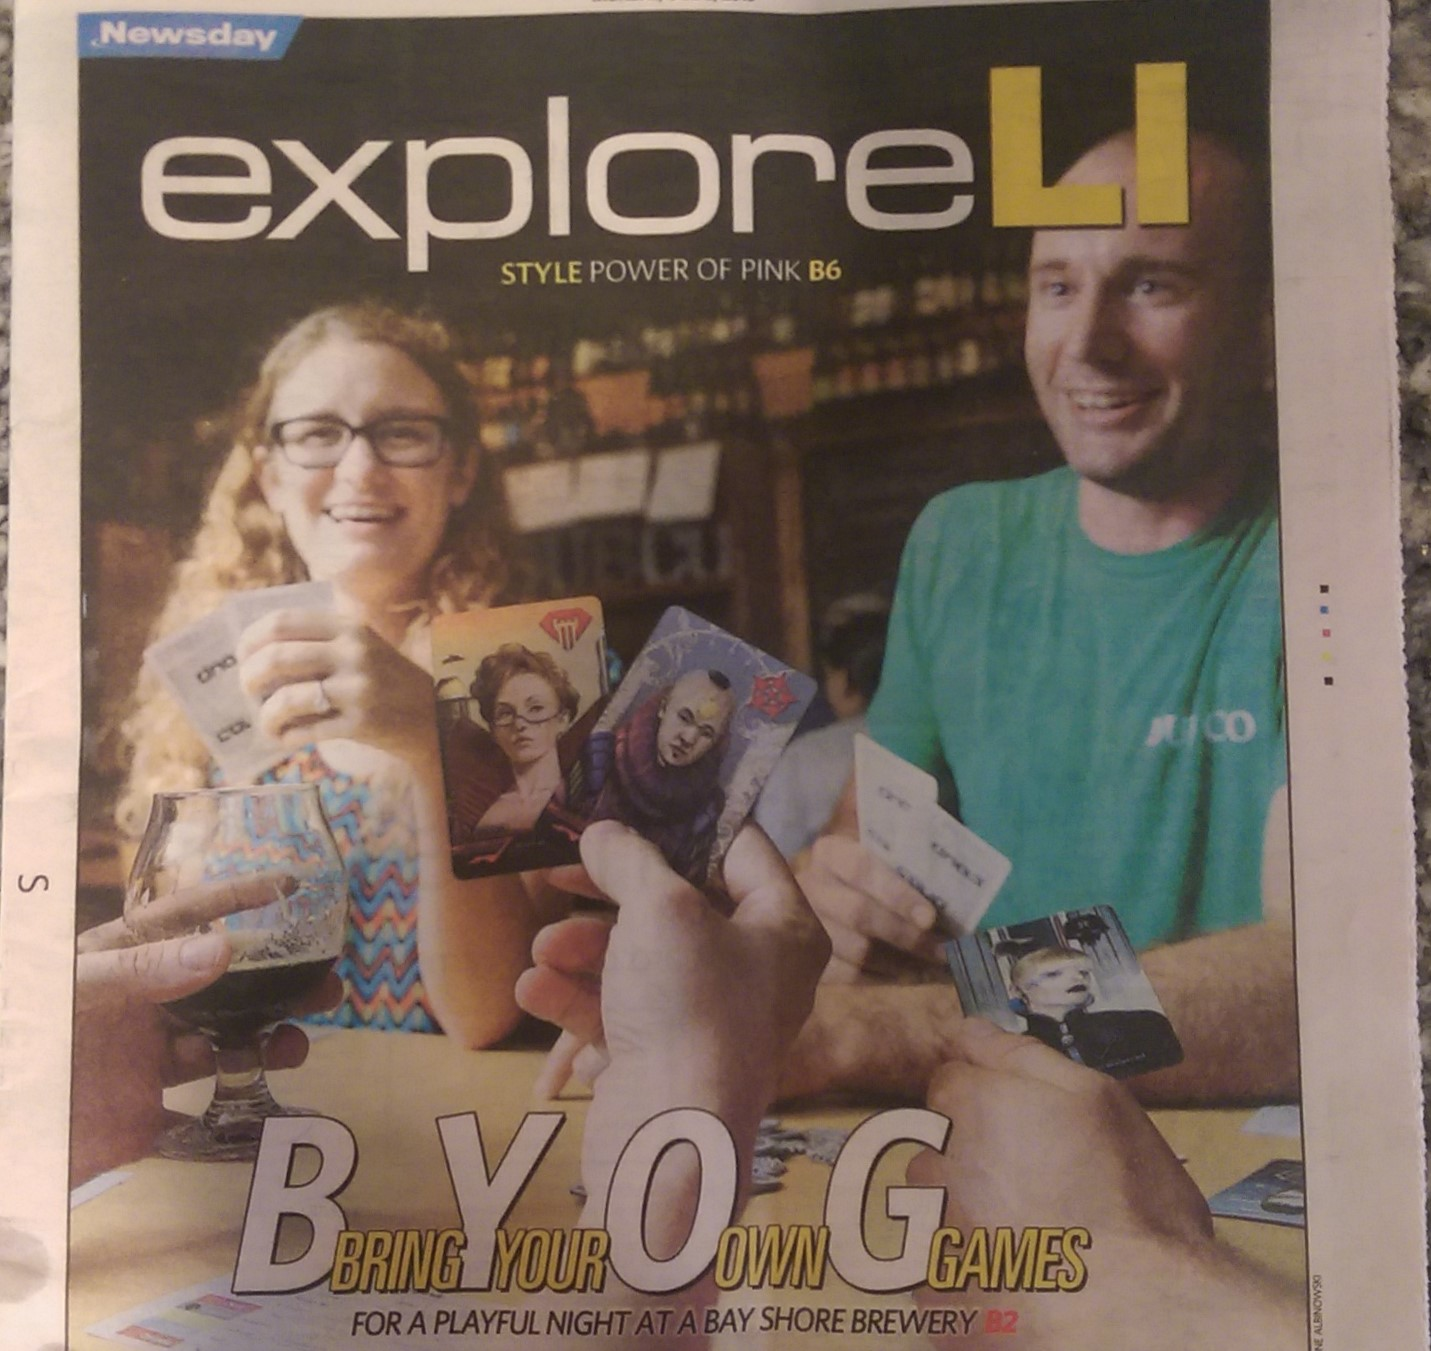 Game Night was featured in Newsday on the cover of Part 2